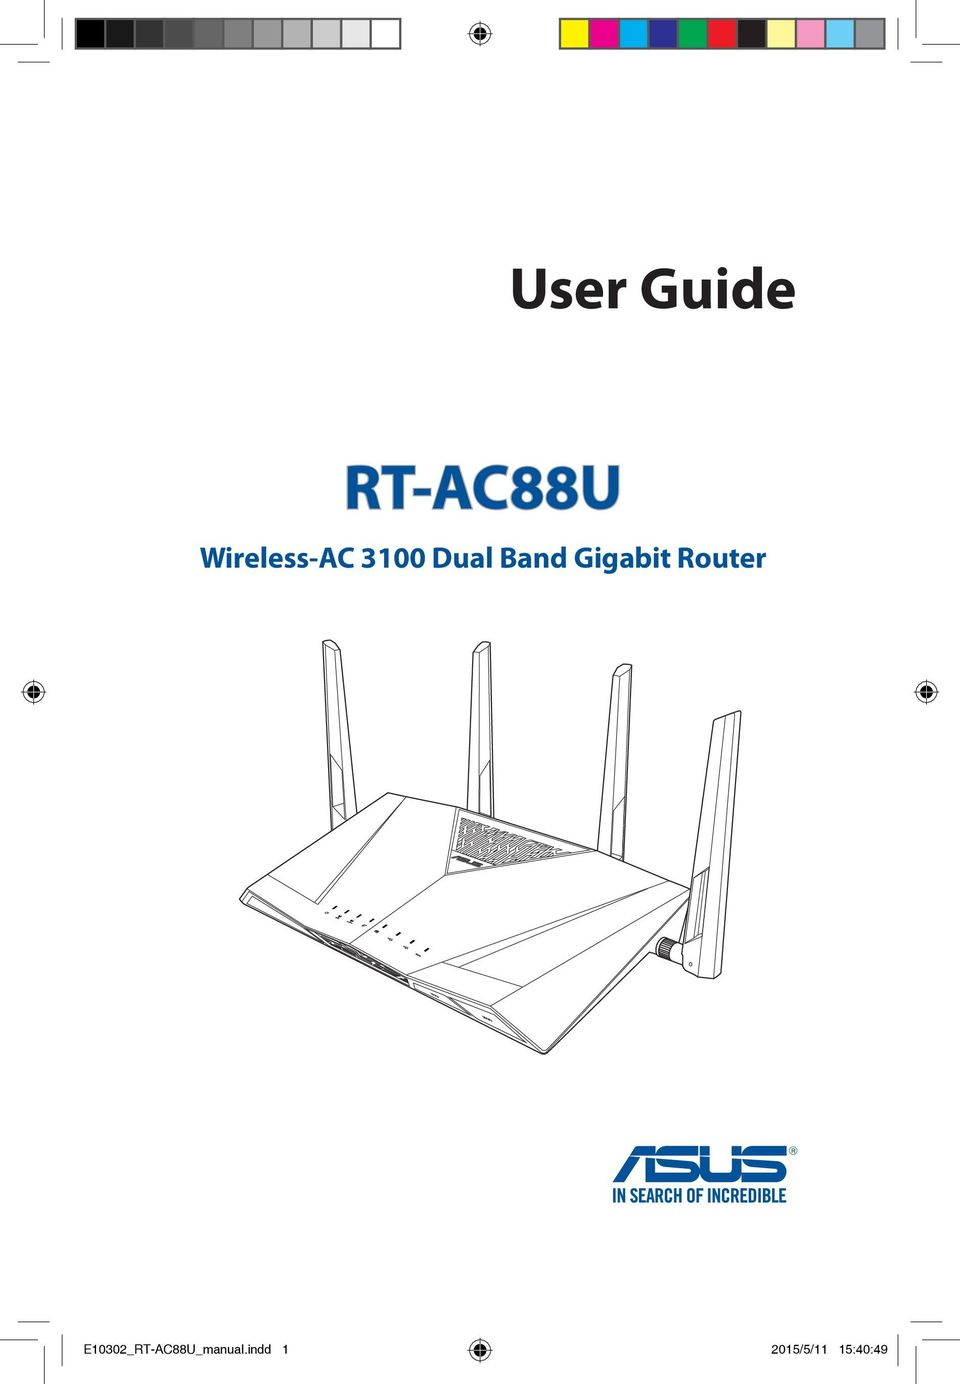 User Guide RT-AC88U. Wireless-AC 3100 Dual Band Gigabit